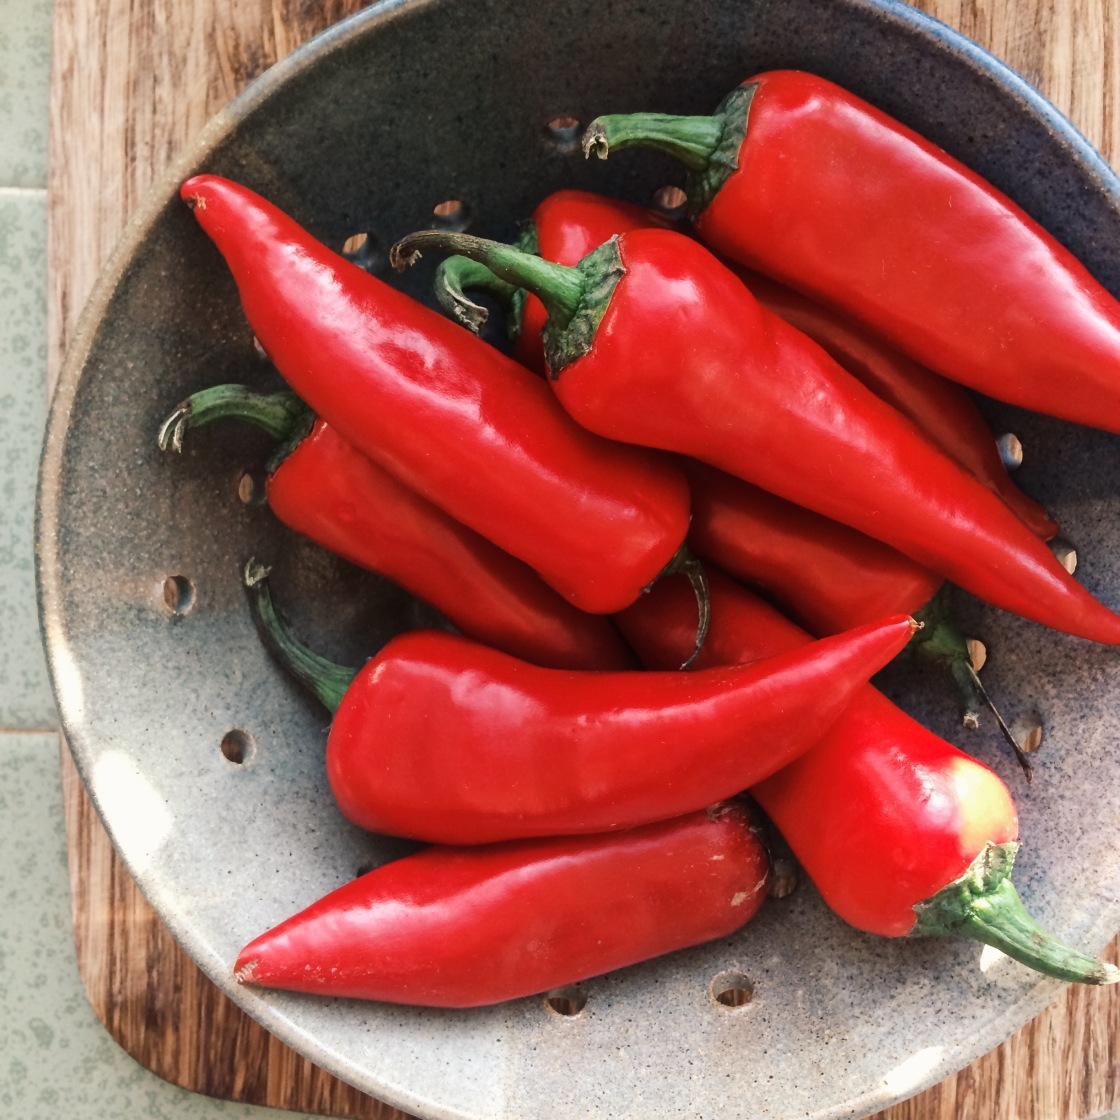 chiles hot peppers